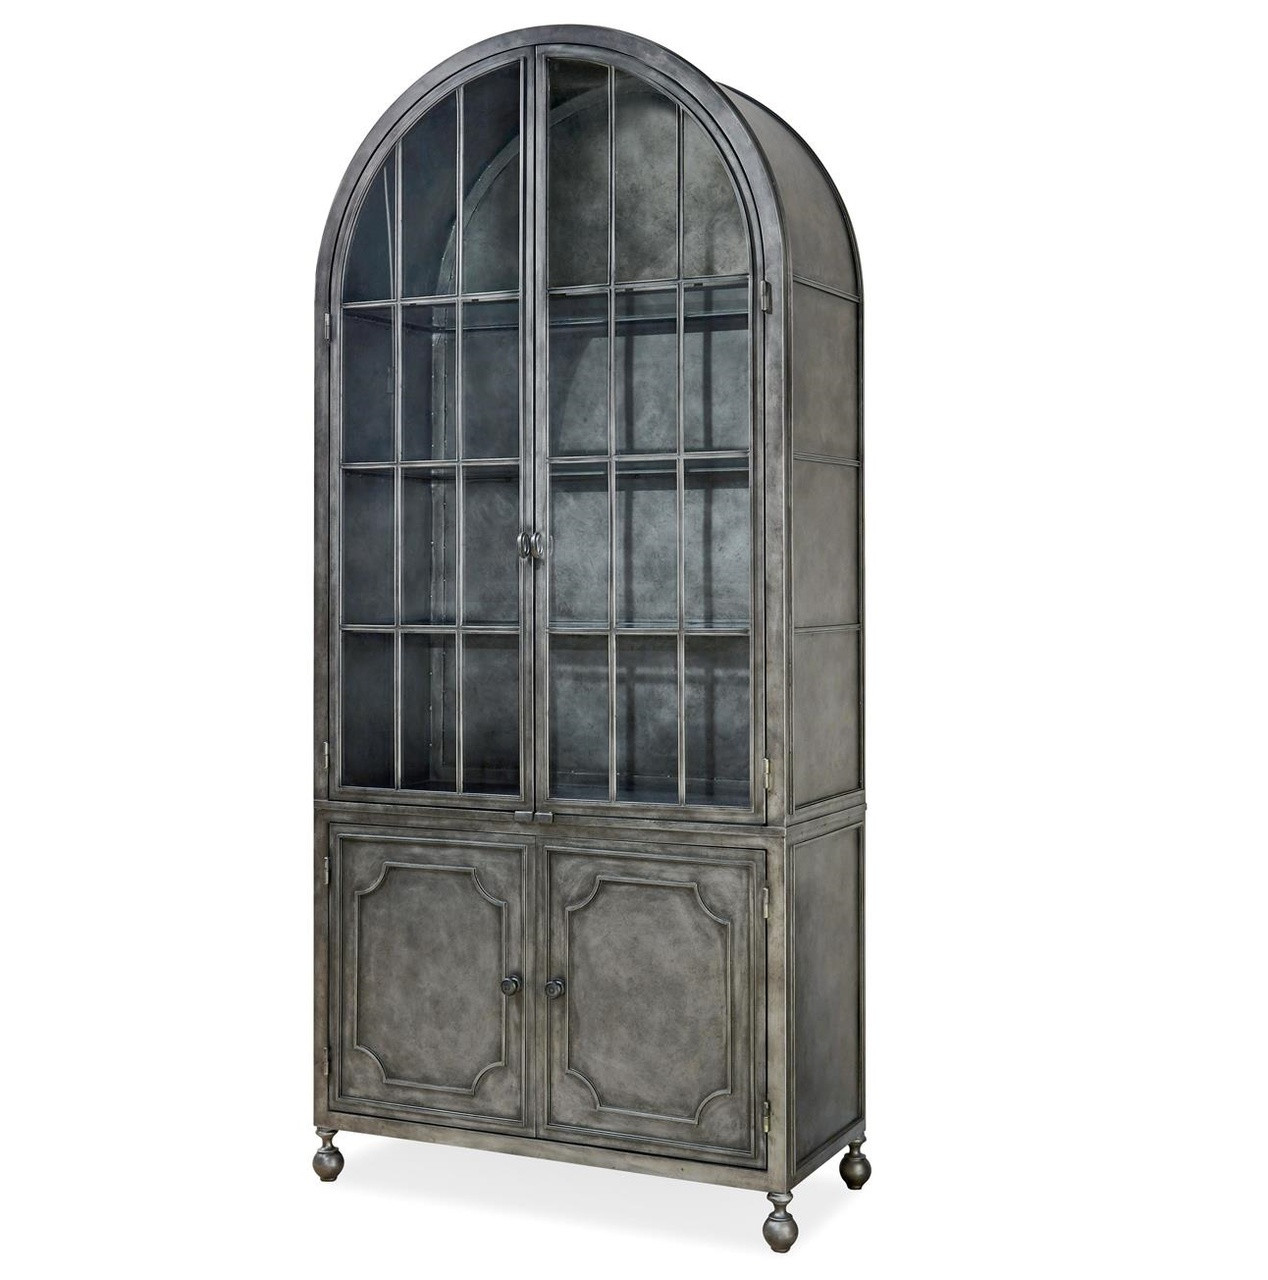 Beau Maison French Industrial Metal Curio Display Cabinet